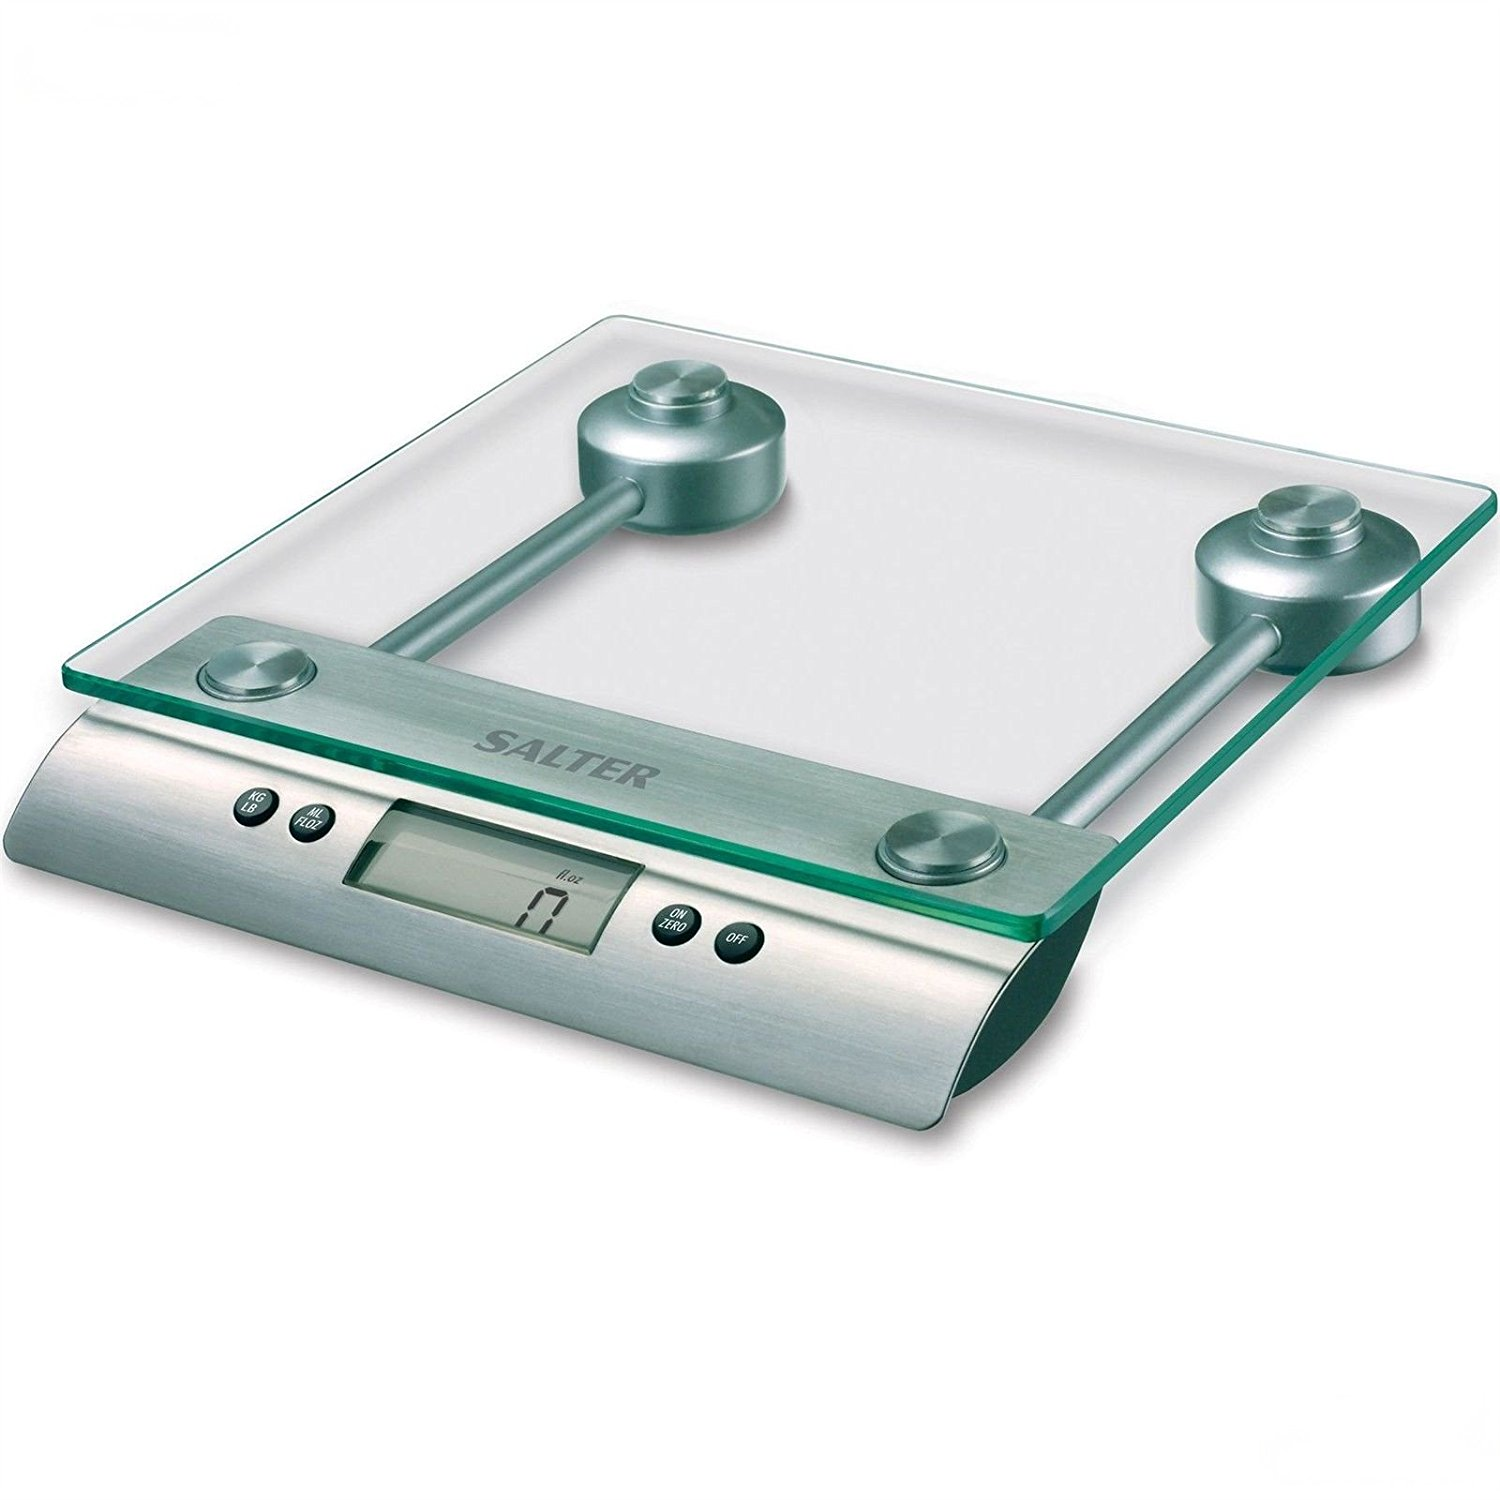 Get Quotations Salter Gl Aquatronic Electronic Digital Dry Liquid Measuring Kitchen Scale Silver